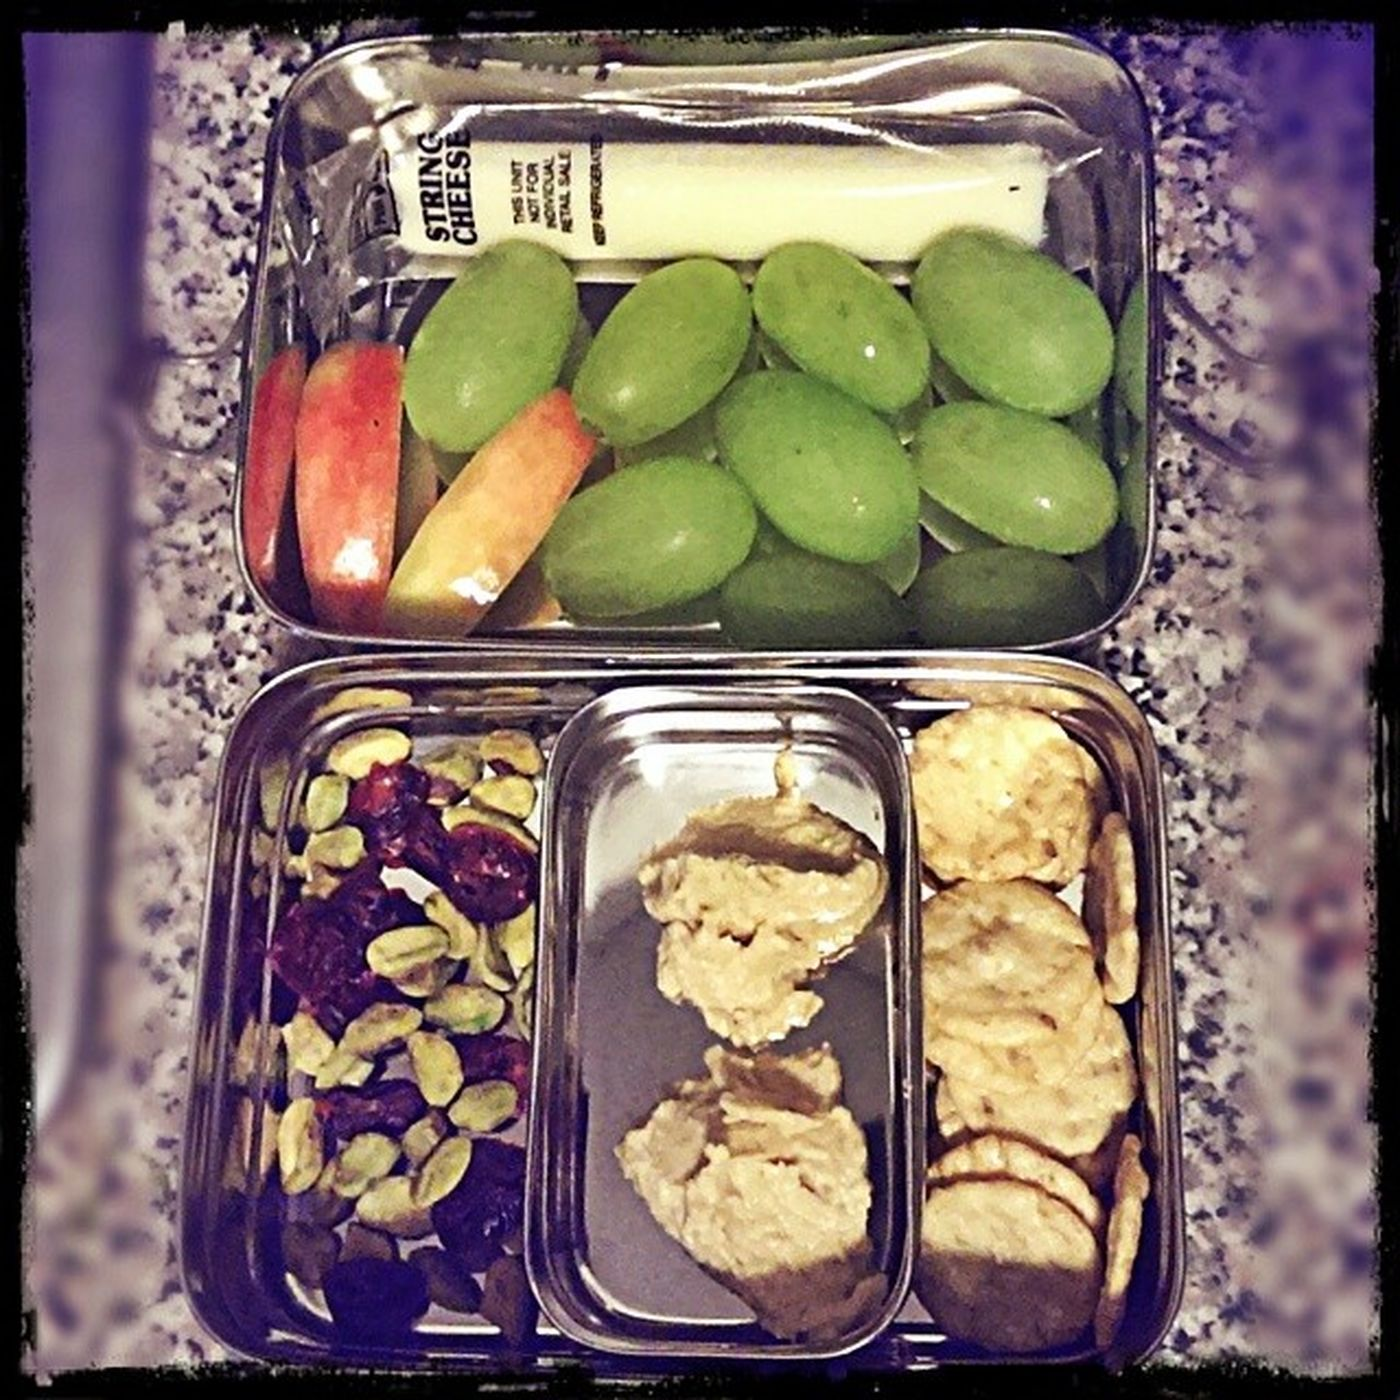 My SnackAttack for tomorrow. Trying to not eat out as much. Need to save up for that future Tinyhouse also, trying to make Healthier choices. Tues-thurs. I don't eat lunch at all, or even breakfast. If I do eat lunch it's usually jack in the box or mickey d's. No more. Time for more concious choices. Habits won't form overnight. But so far I'm two for two. I even cooked dinner last night and had leftovers today.